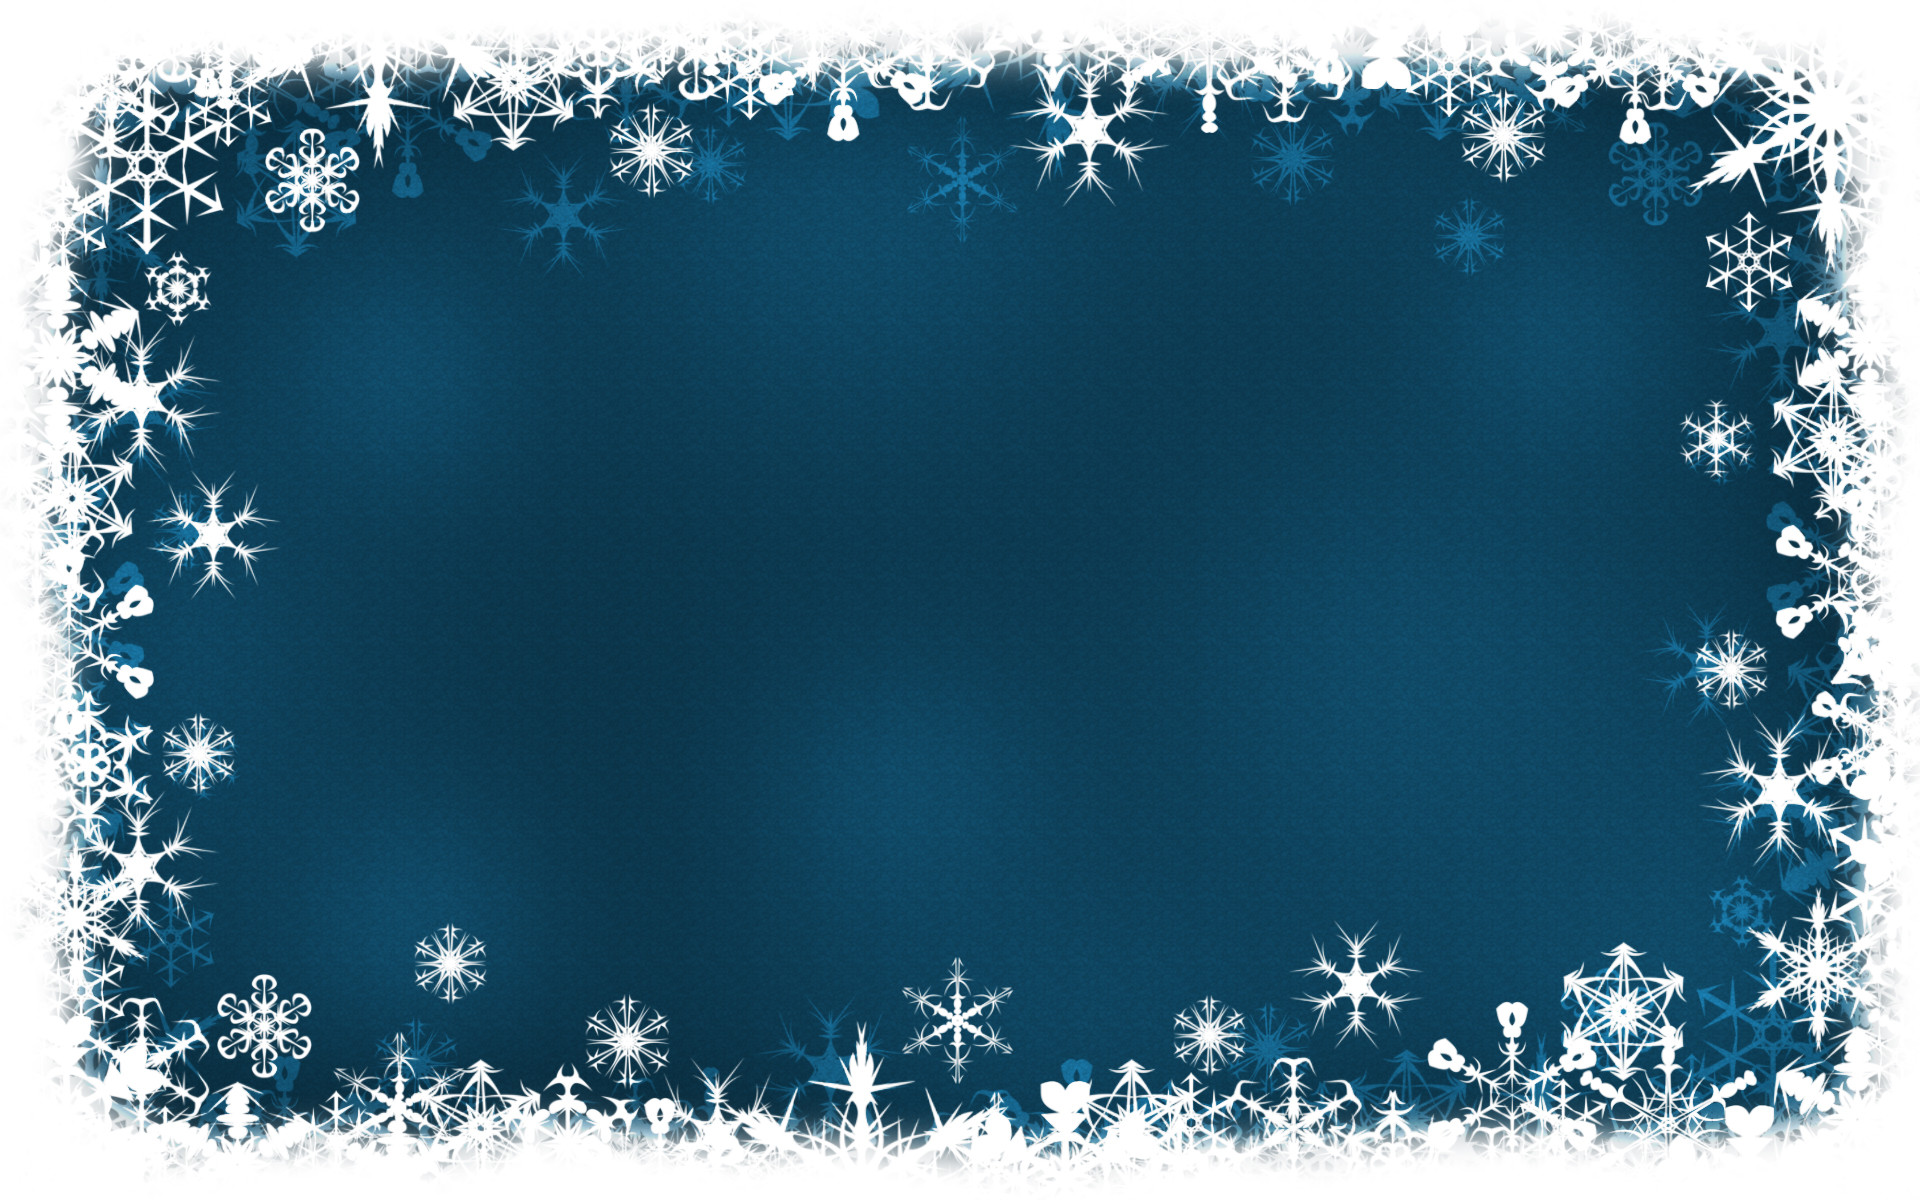 holiday background pictures ·①, Powerpoint templates